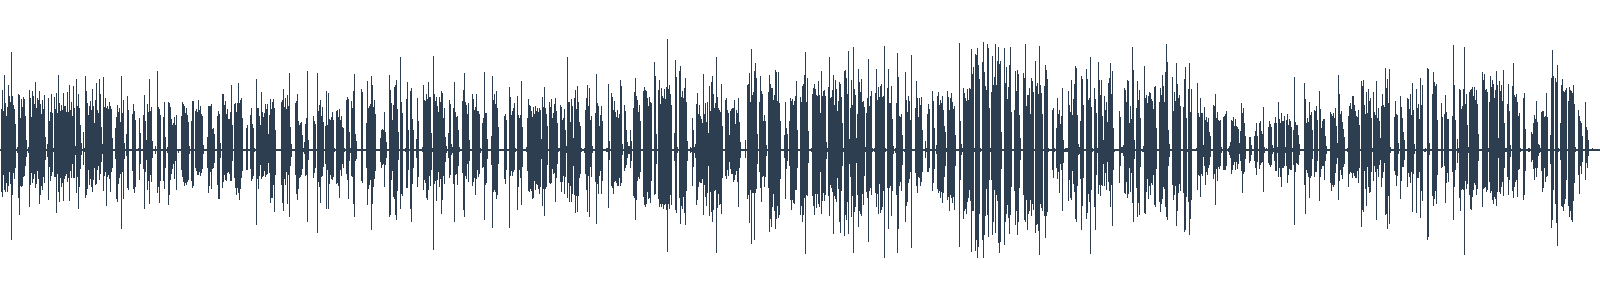 Miriam waveform